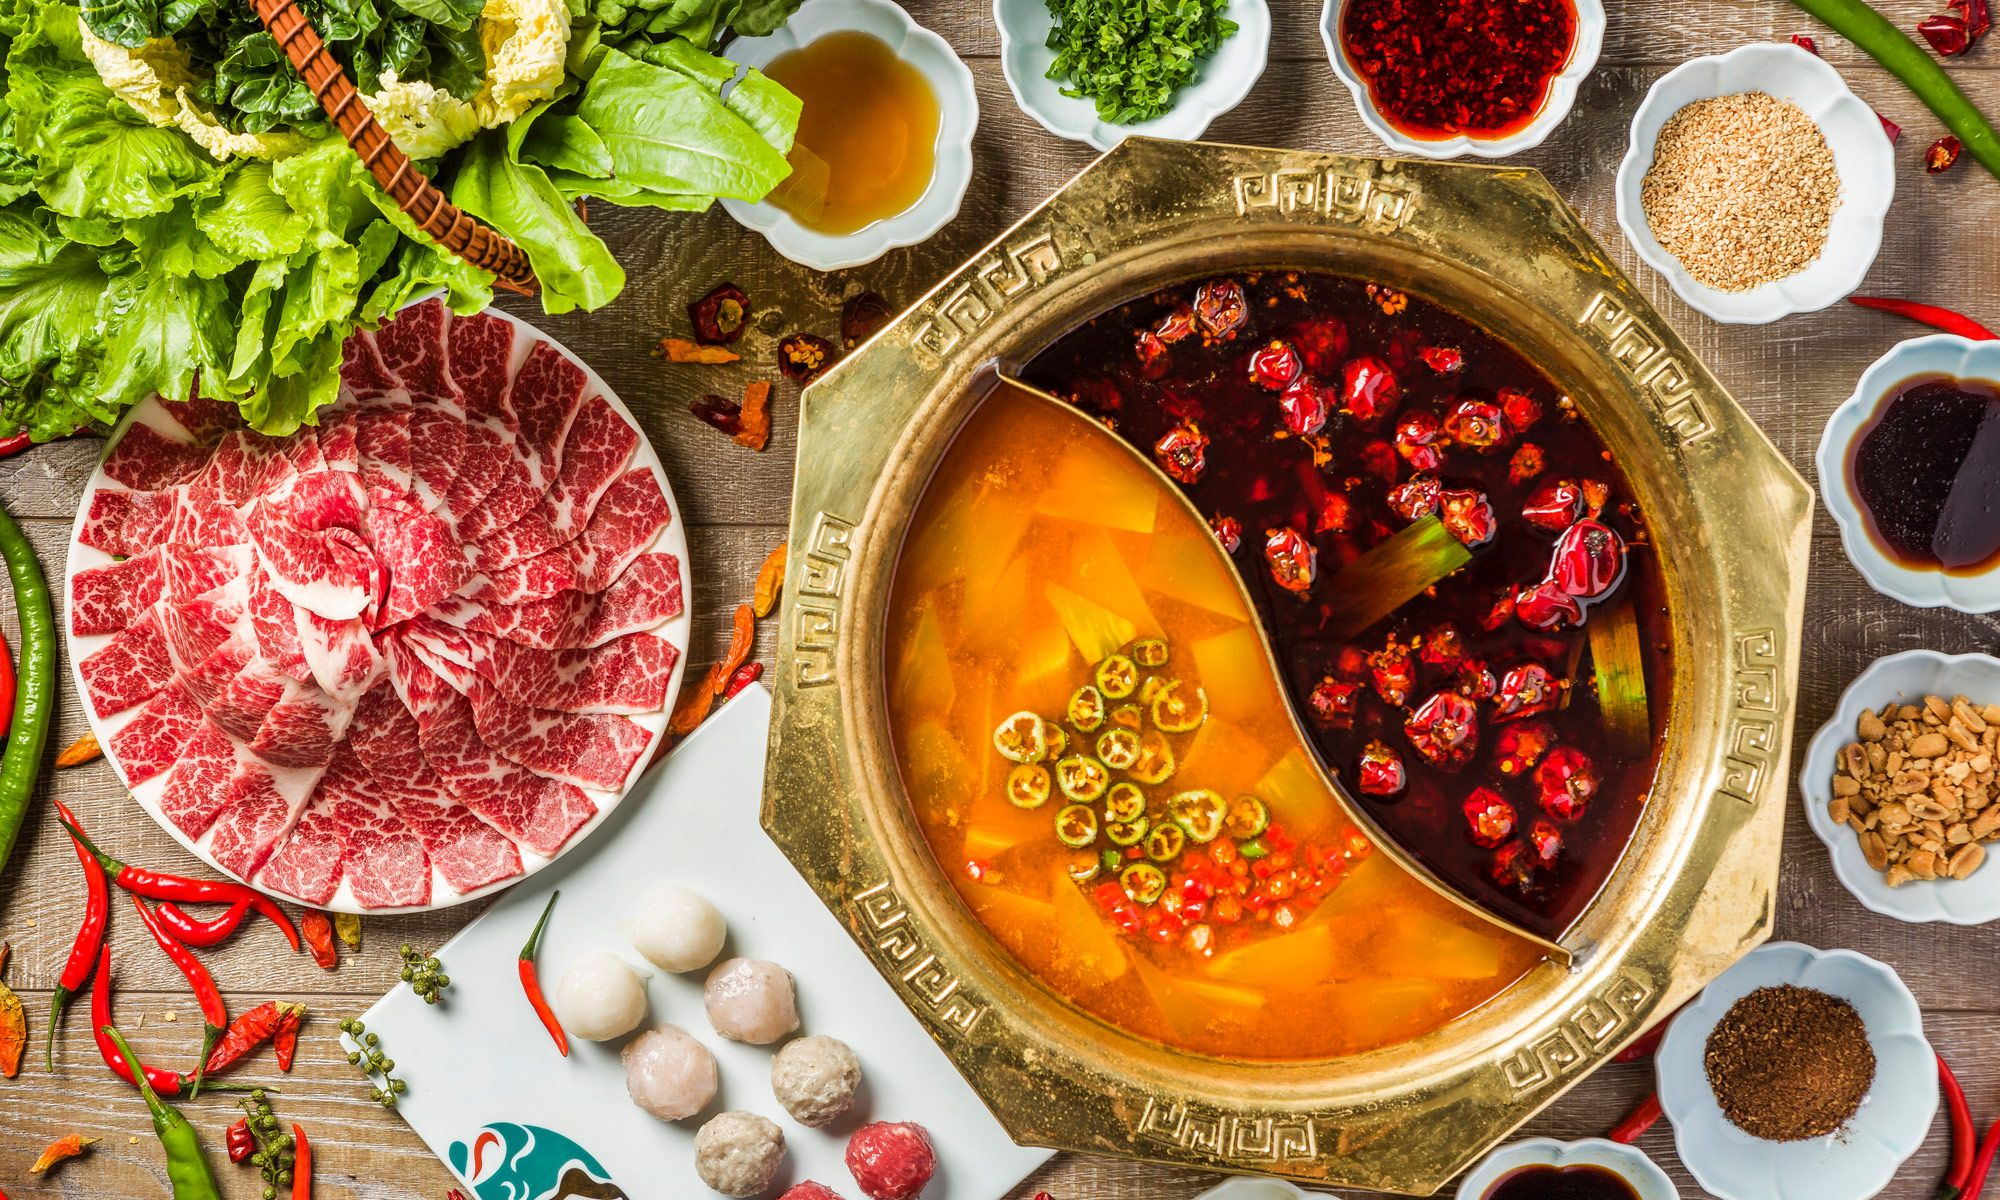 San Xi Lou Opens Sister Restaurant At Causeway Bay's Times Square